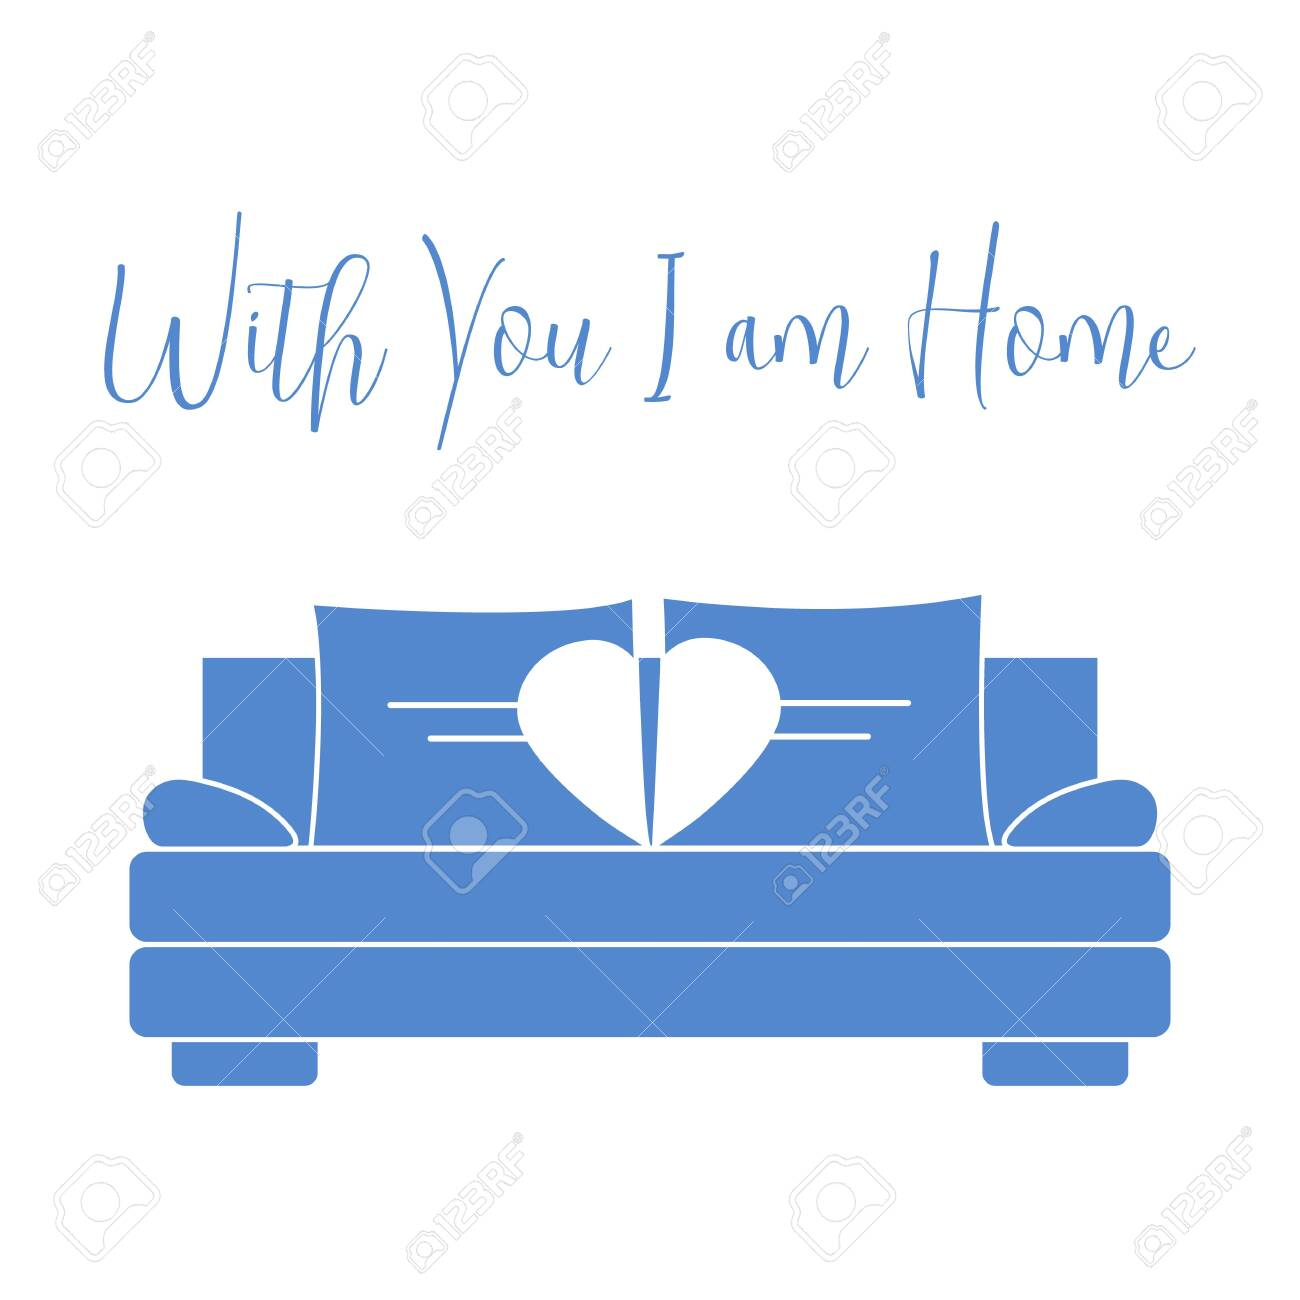 Vector illustration with sofa, pillows in heart shape. Inscription With you I am home. Valentine's day, wedding. Romantic background. Template for greeting card, fabric, print. - 119164188